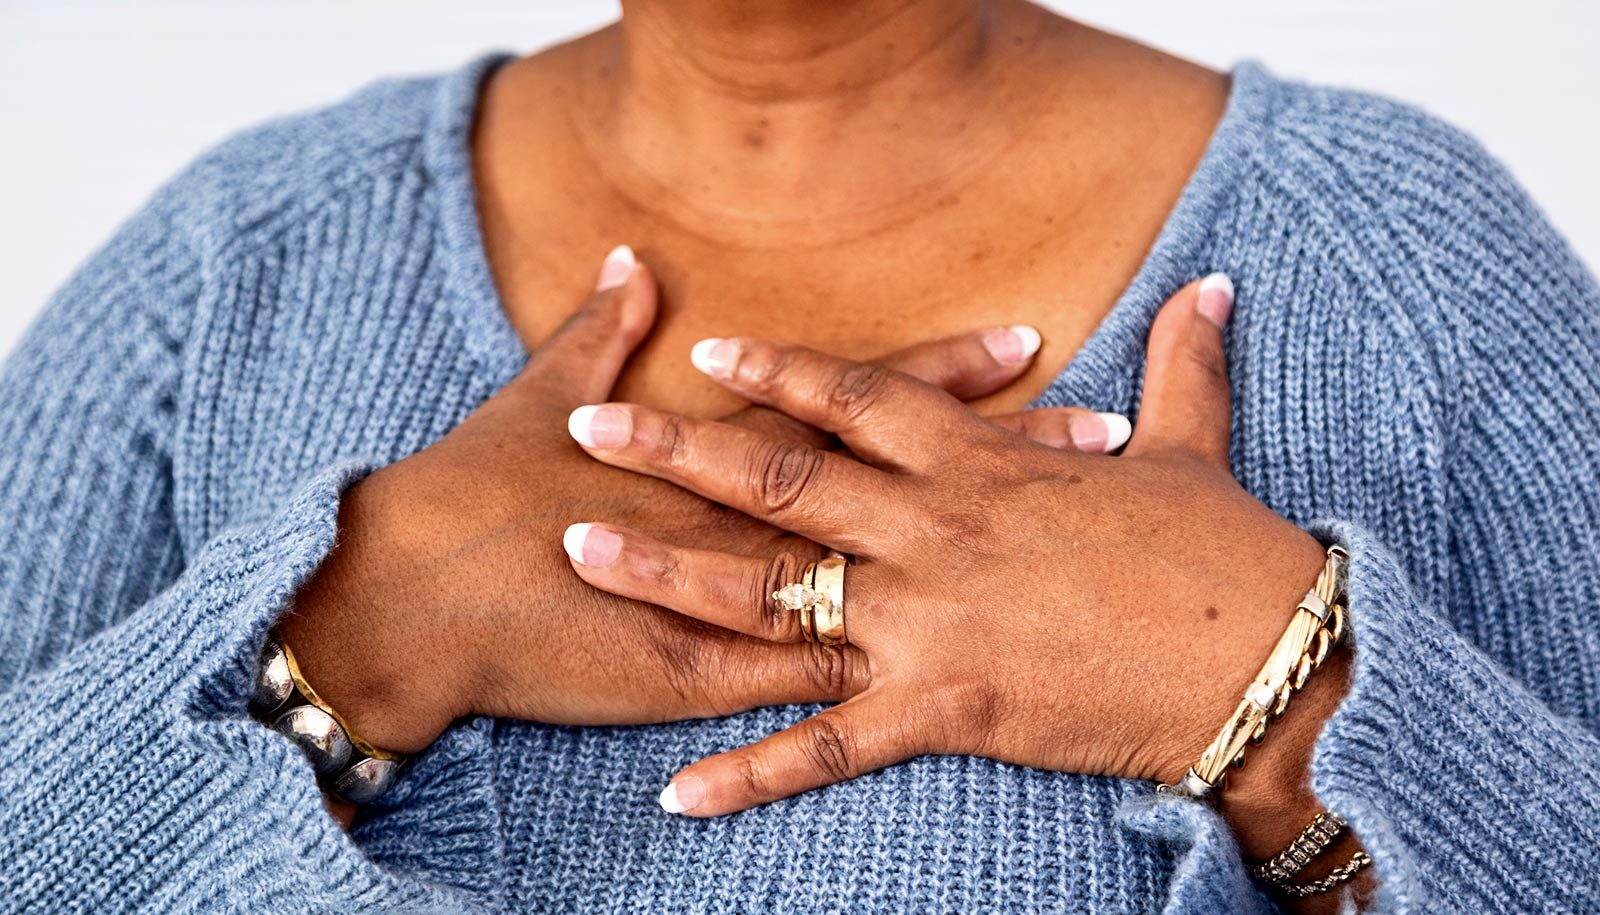 Heart disease risk grows during menopause